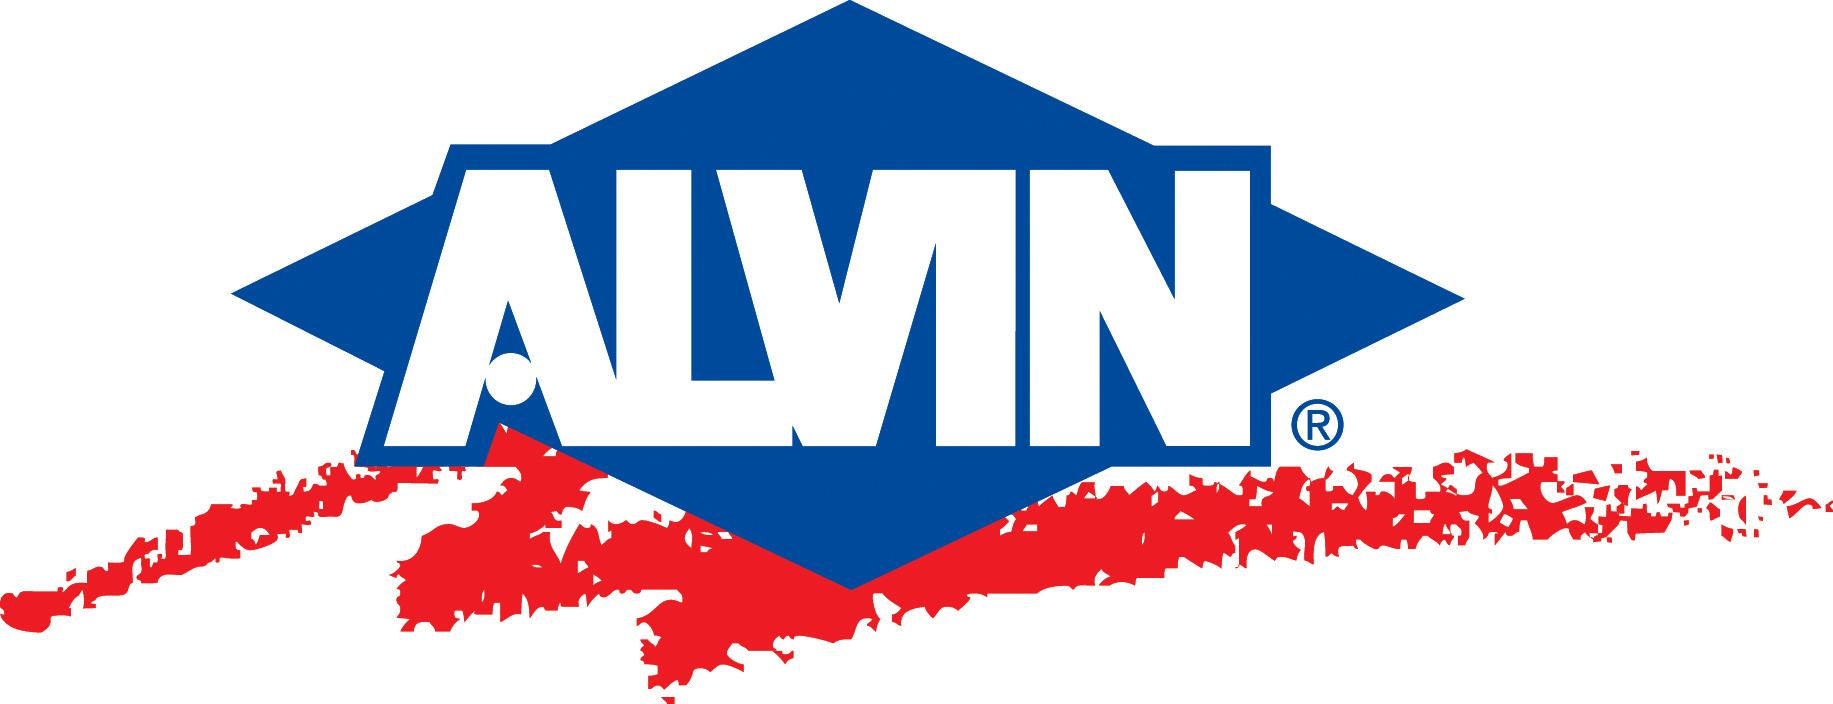 alvin-logo-large-wash.jpg